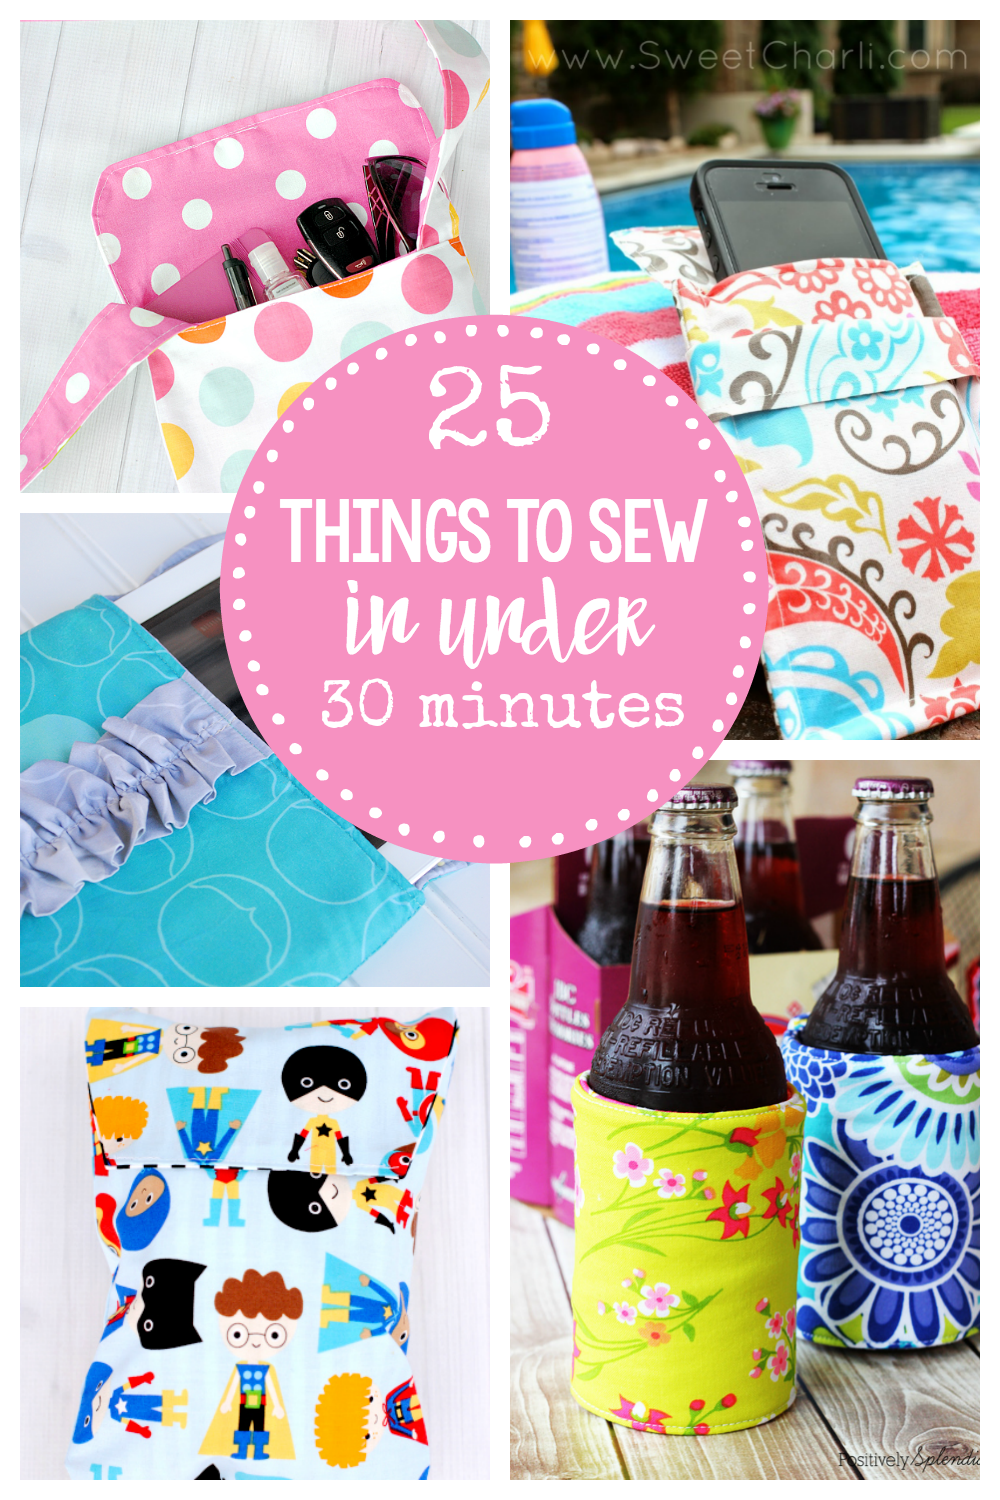 be191da39f3b Easy Sewing Patterns-These 25 Quick Sewing Projects can be sewn in under 30  minutes